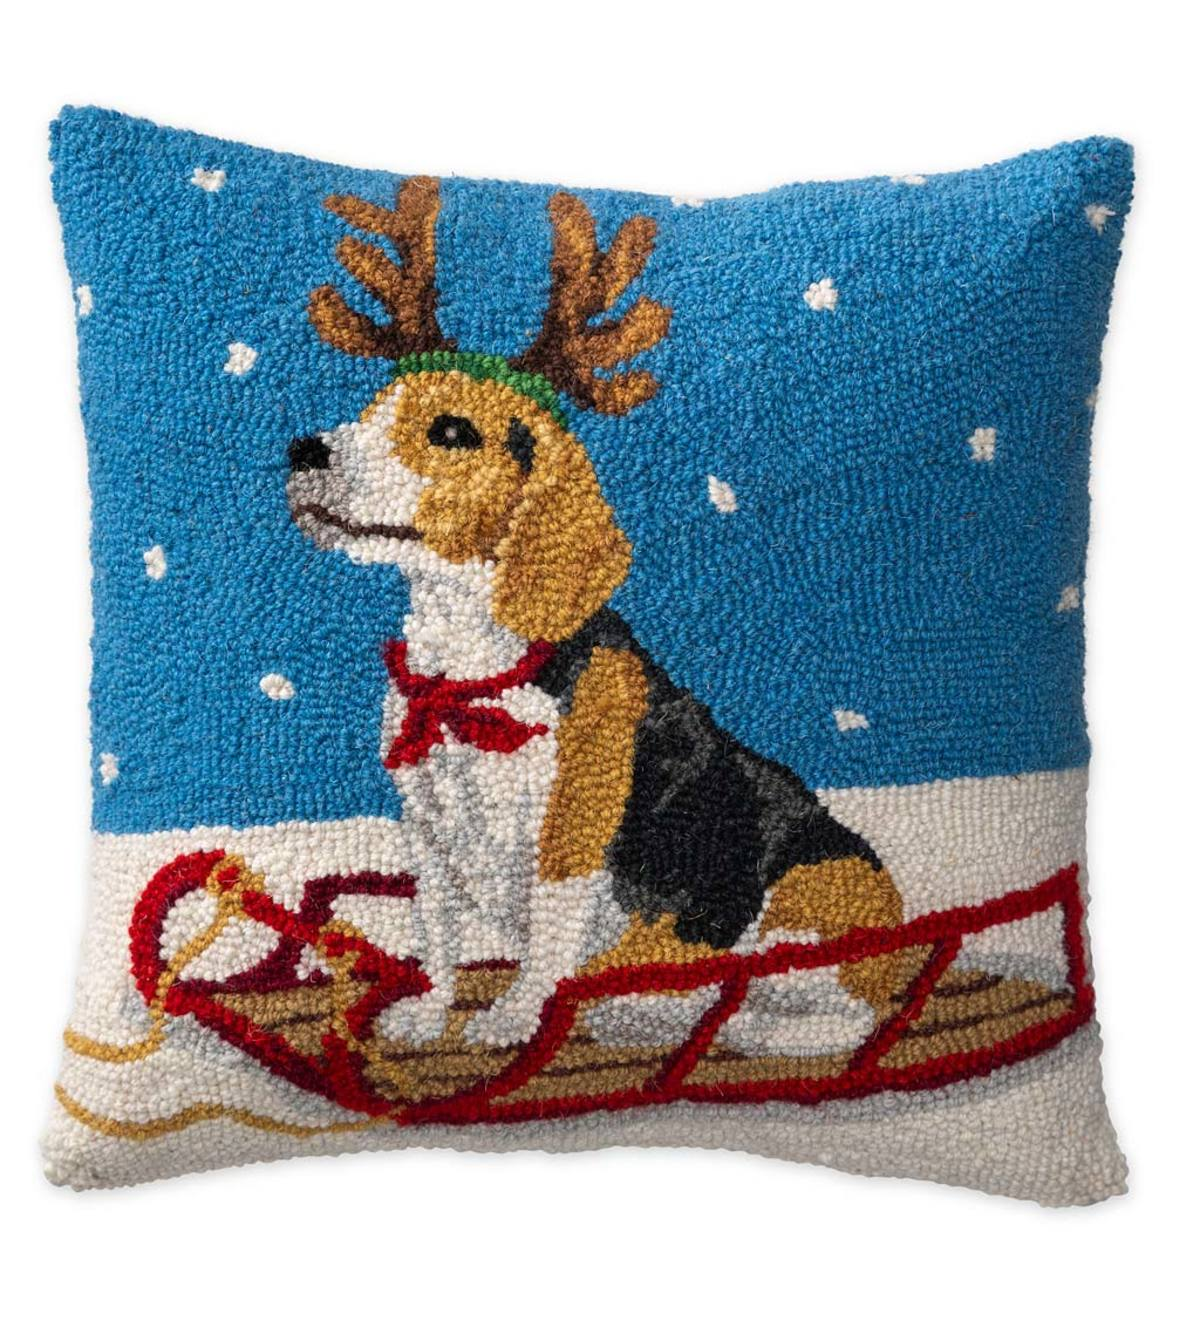 Hooked Wool Beagle On Sled Holiday Throw Pillow Plowhearth